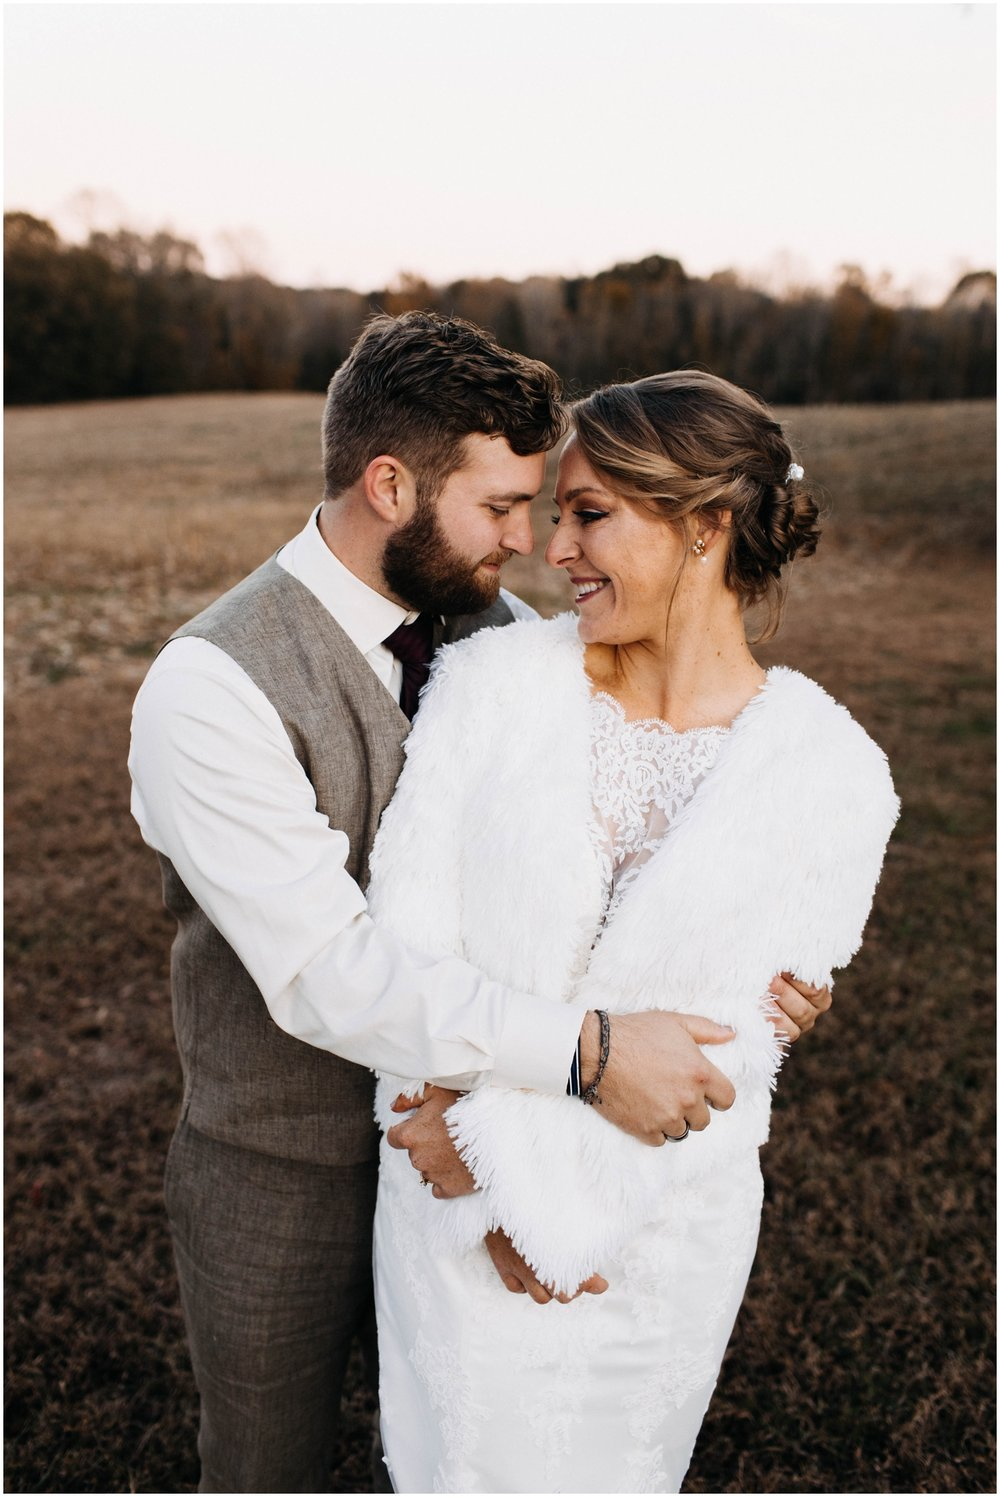 Jess+Dan_rustic_southern_farm_fall_wedding_charlotte_north carolina_taylor powers_0243.jpg